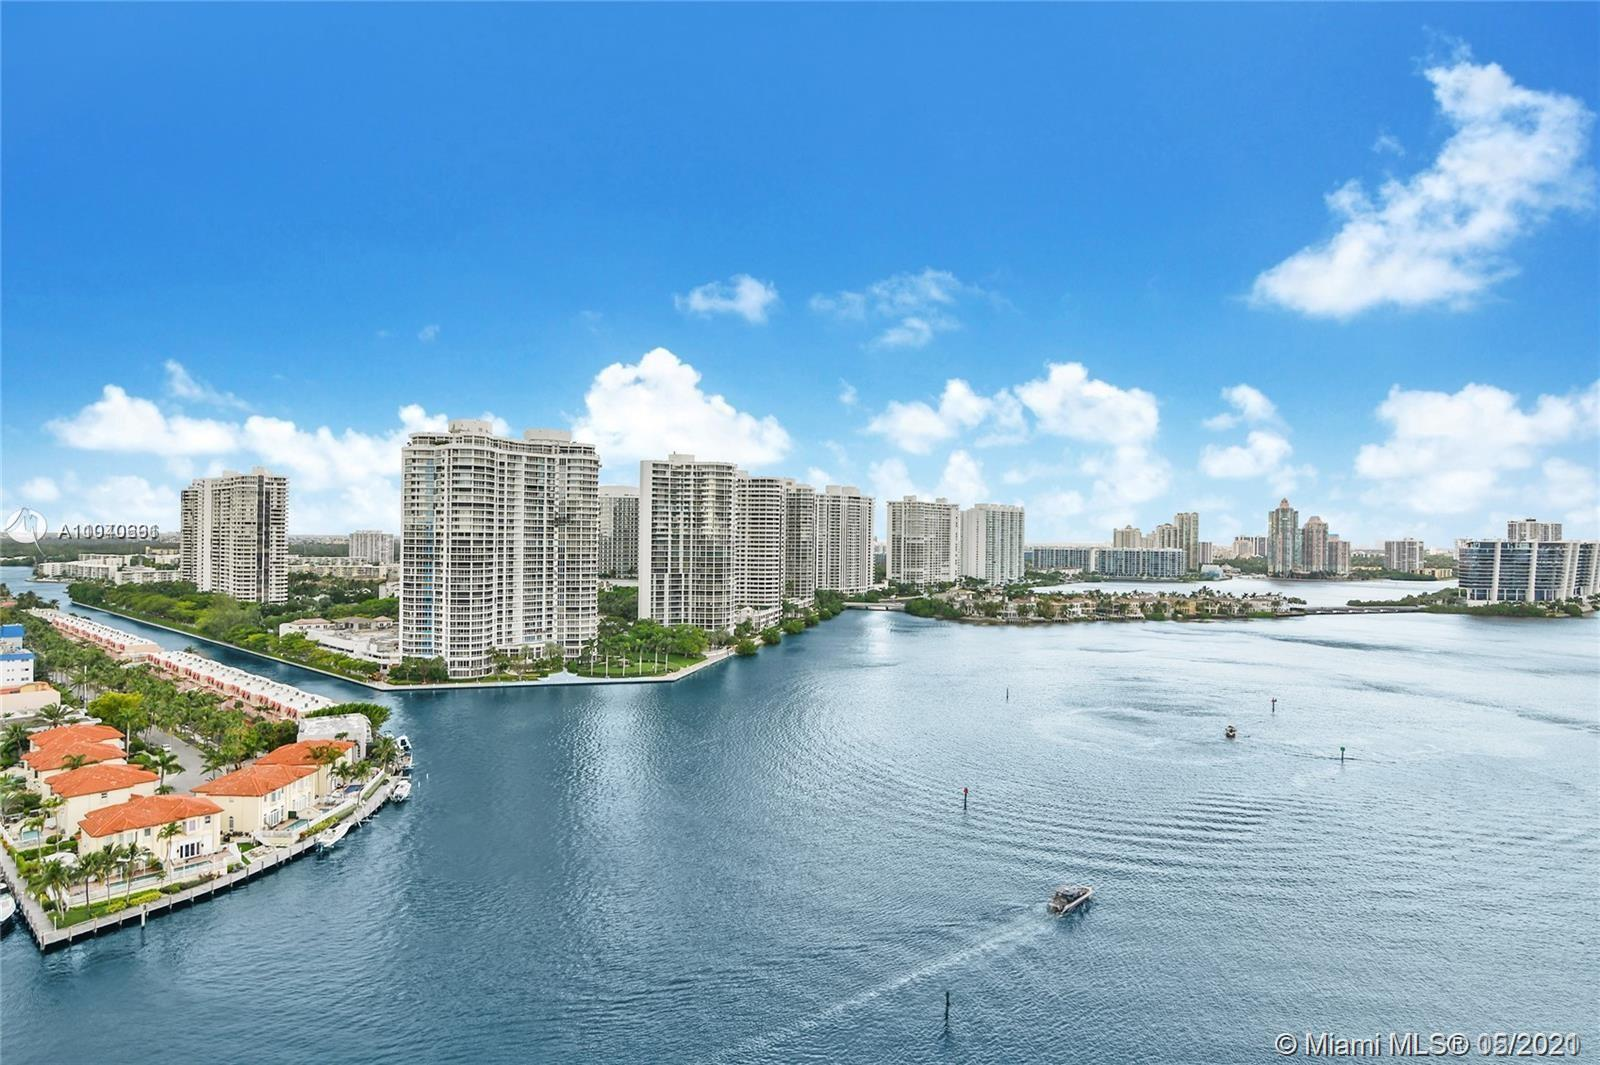 LOWER PENTHOUSE 2/2  LARGE UNIT 1500 SQ F ,SPECTACULAR  WATERFRONT ,BRILLIANT VIEW, MINT CONDITION ,